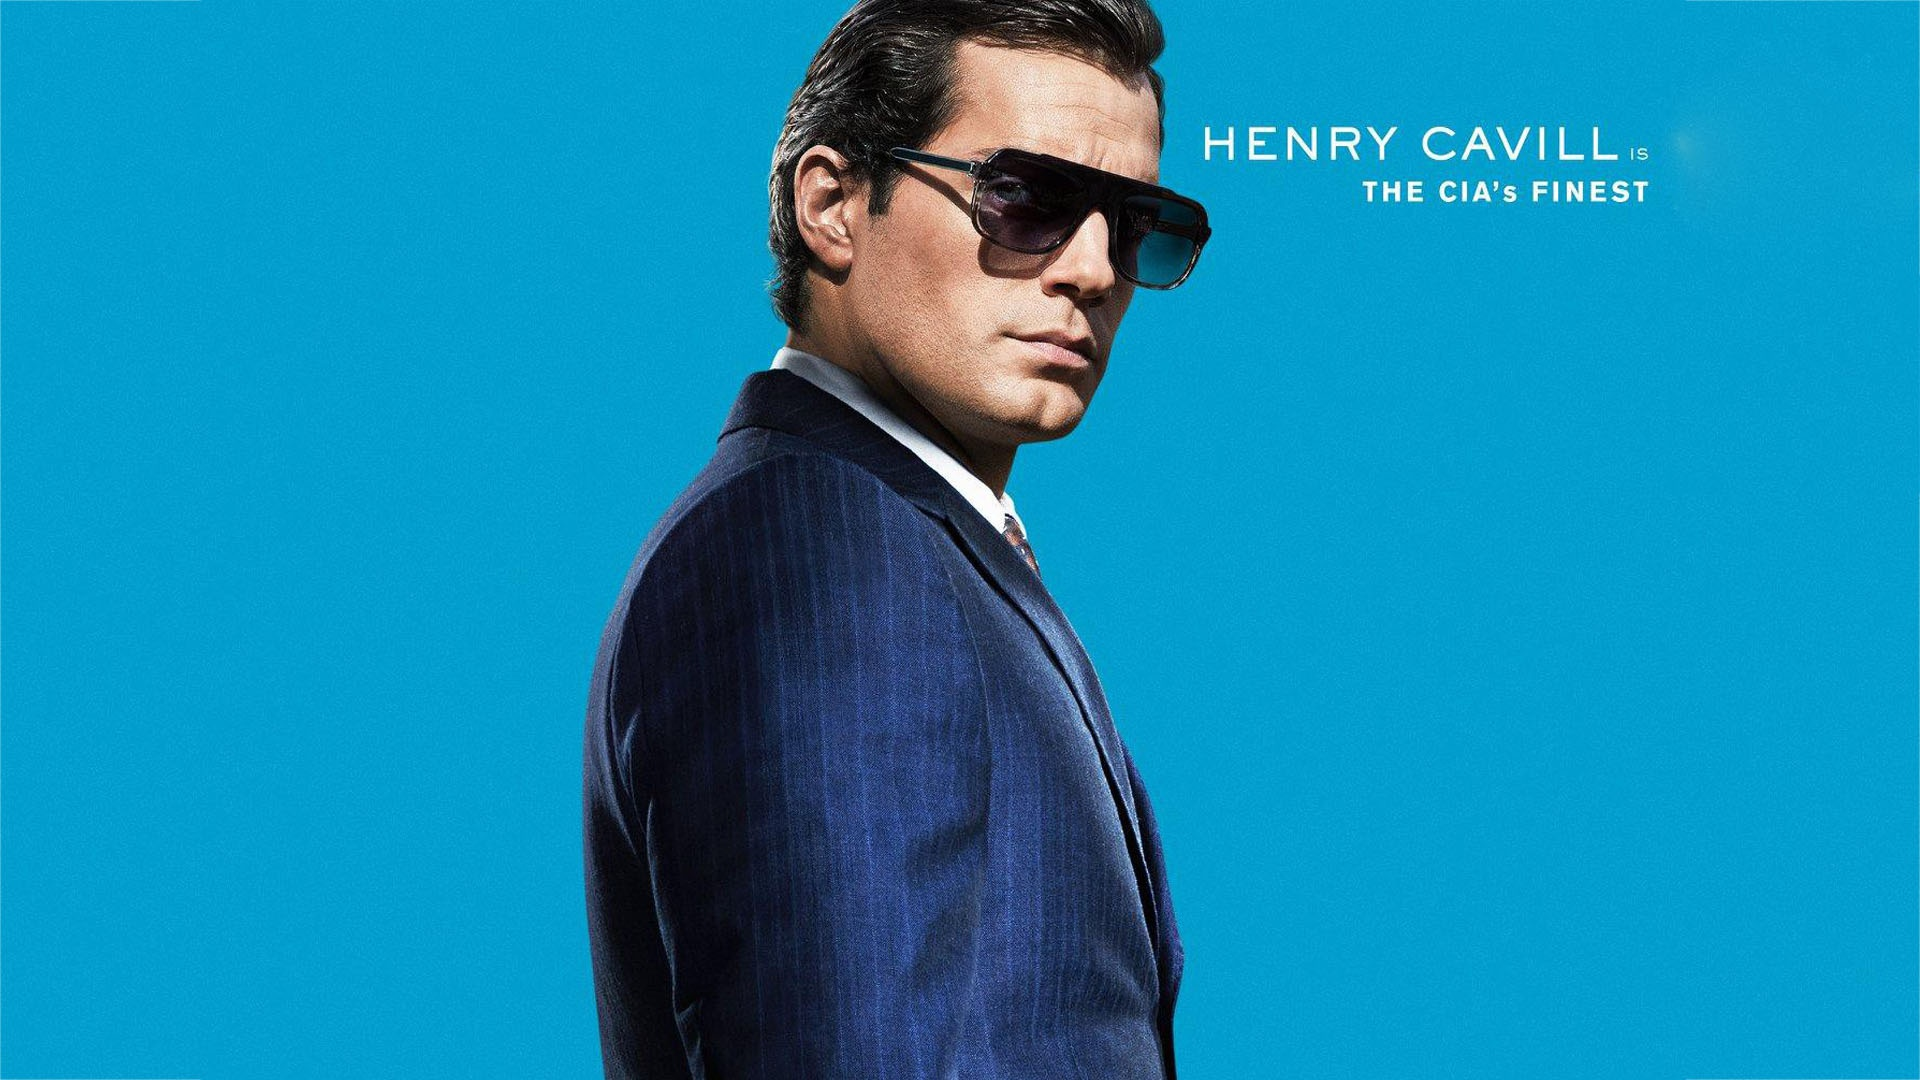 Henry Cavill As Napoleon Solo UNCLE 2015 Wallpapers 1920x1080